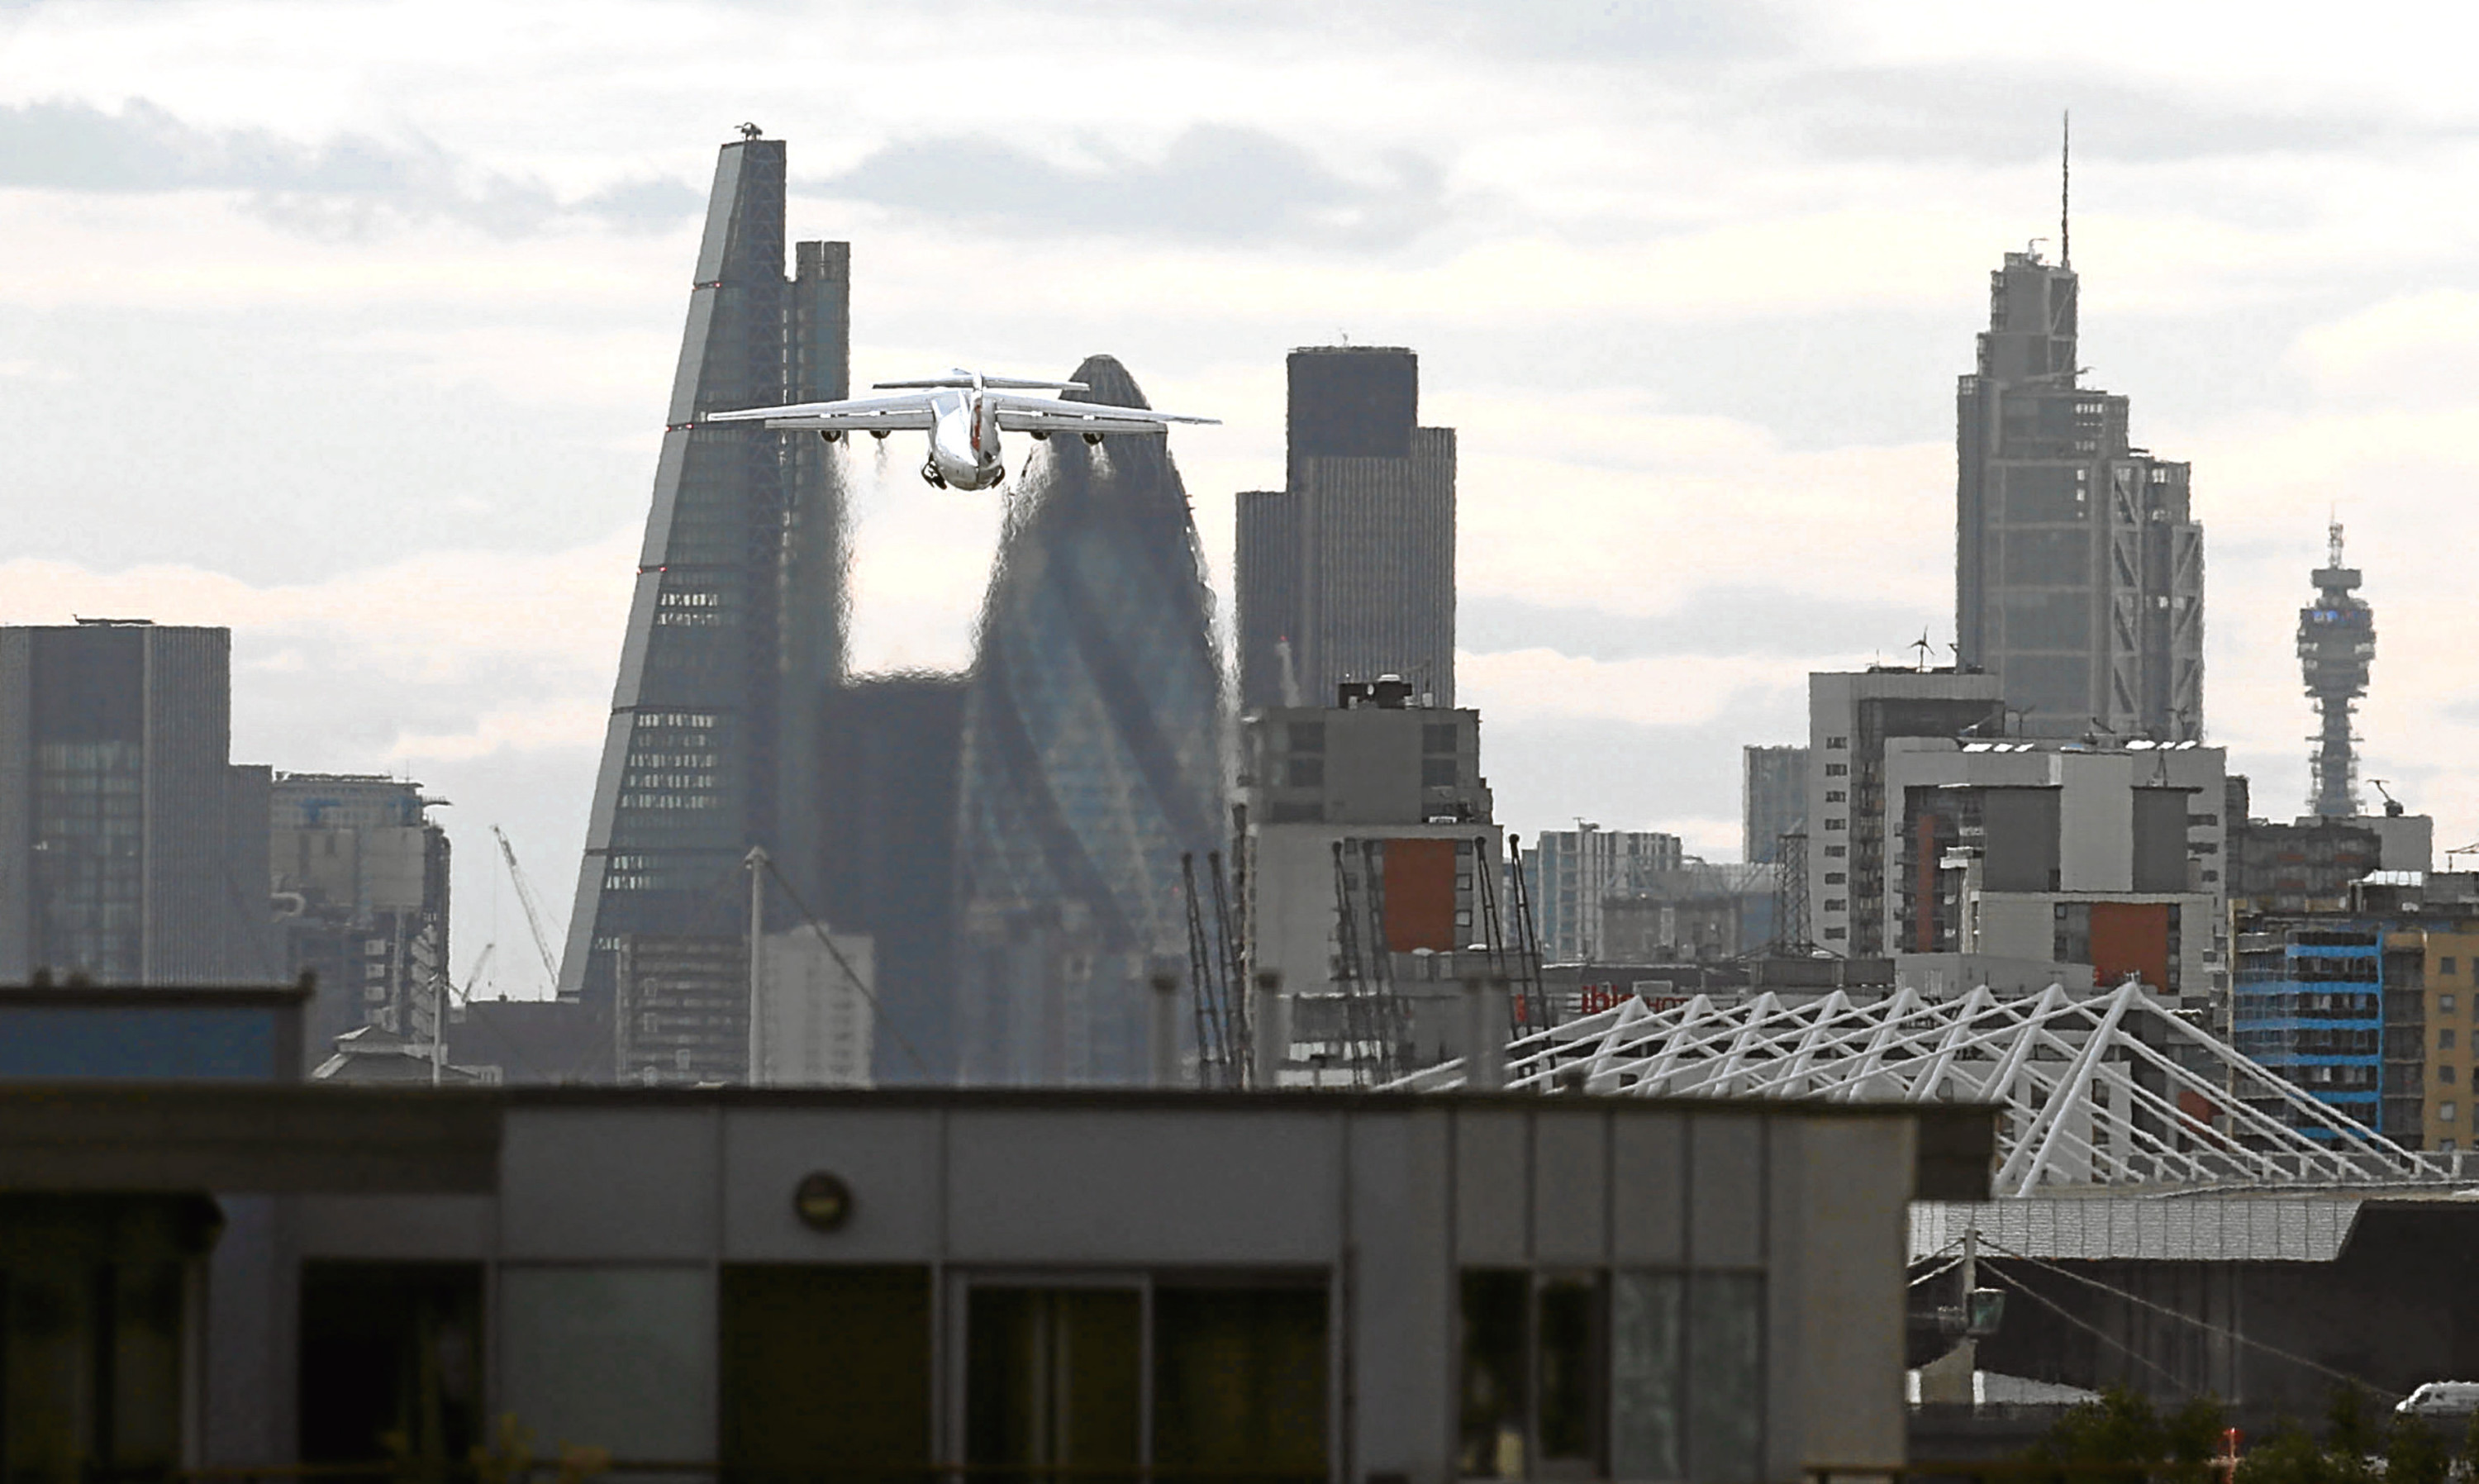 The skyline of the City of London, home to some of the world's biggest banks.